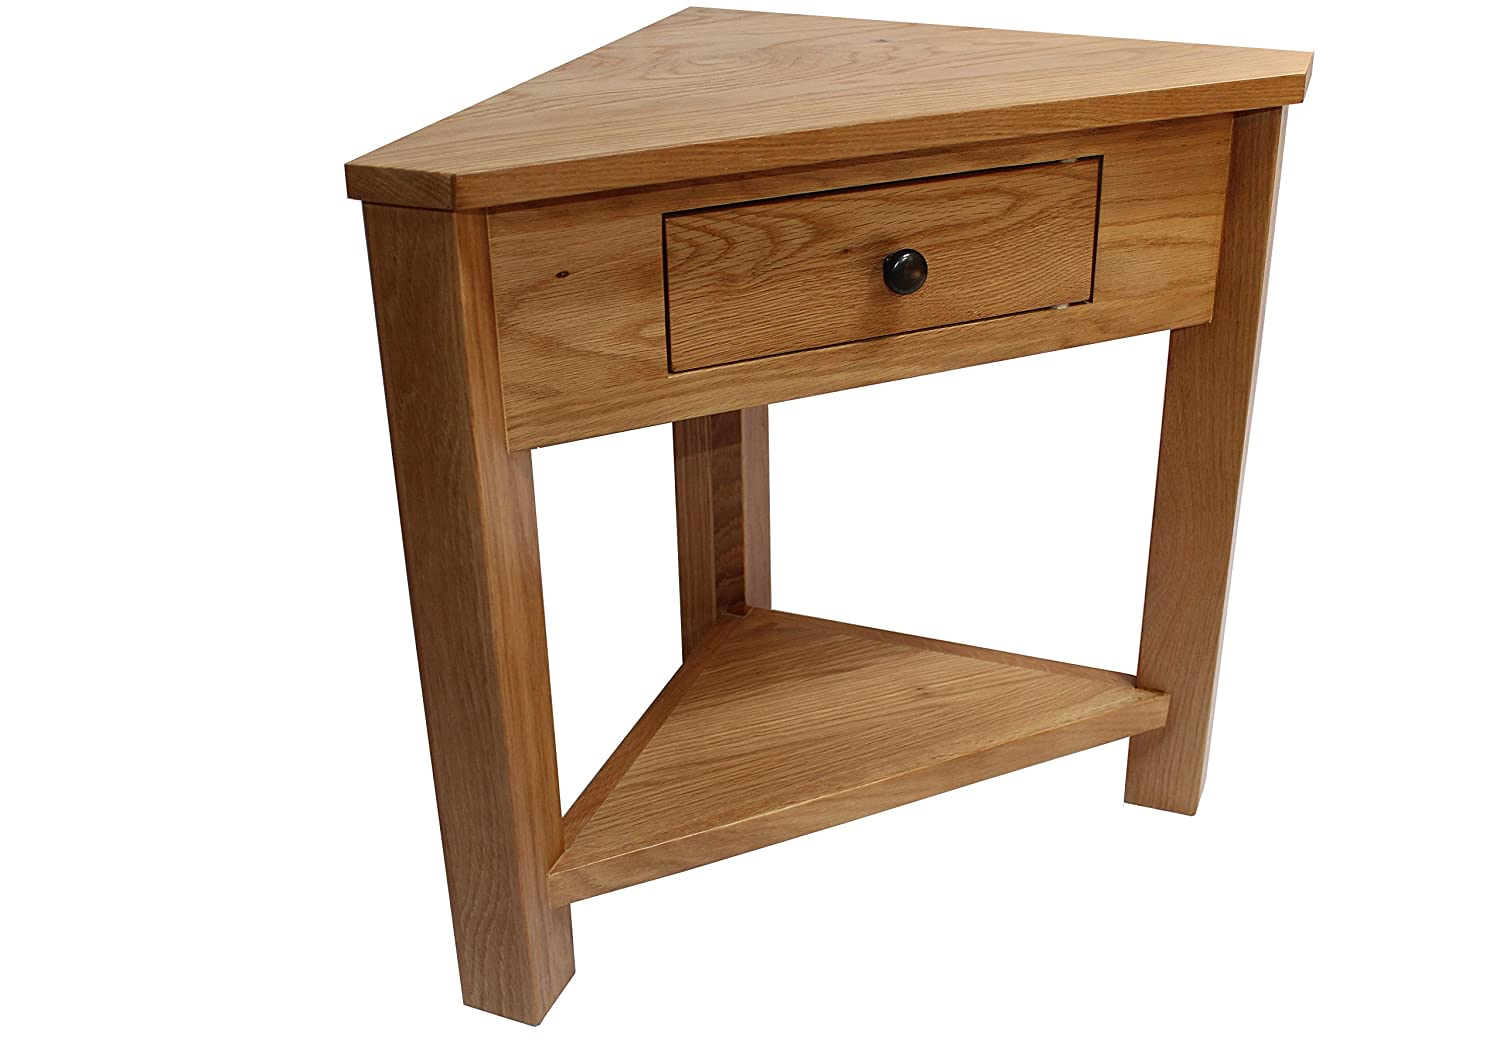 corner hall table. Oak Corner Unit Console Telephone Lamp Table Hallway Plant Stand Hall Furniture New: Amazon.co.uk: Kitchen \u0026 Home O